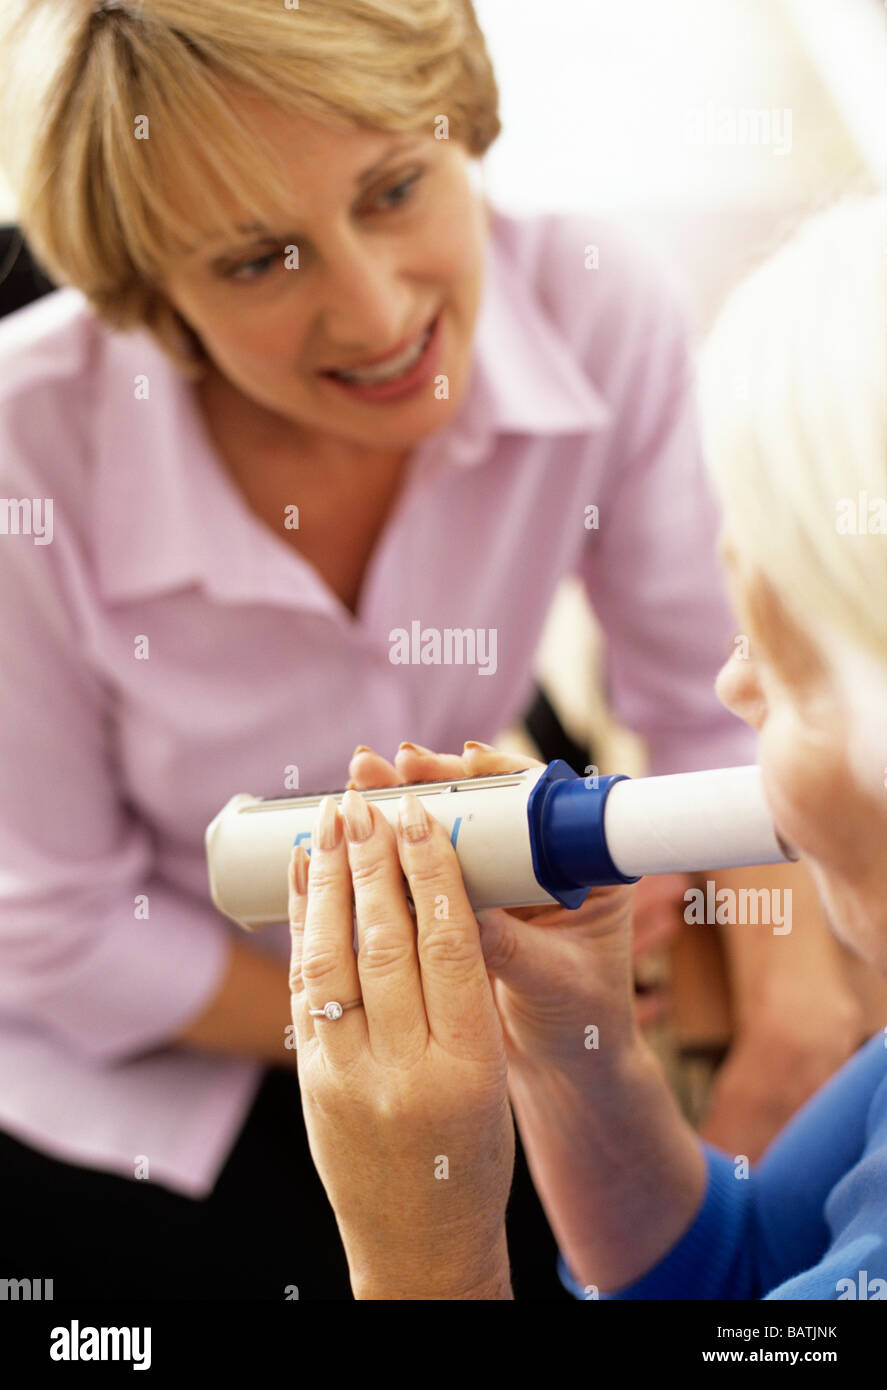 Lung function test. 63-year-old woman breathing into a peak flow meter (spirometer). - Stock Image